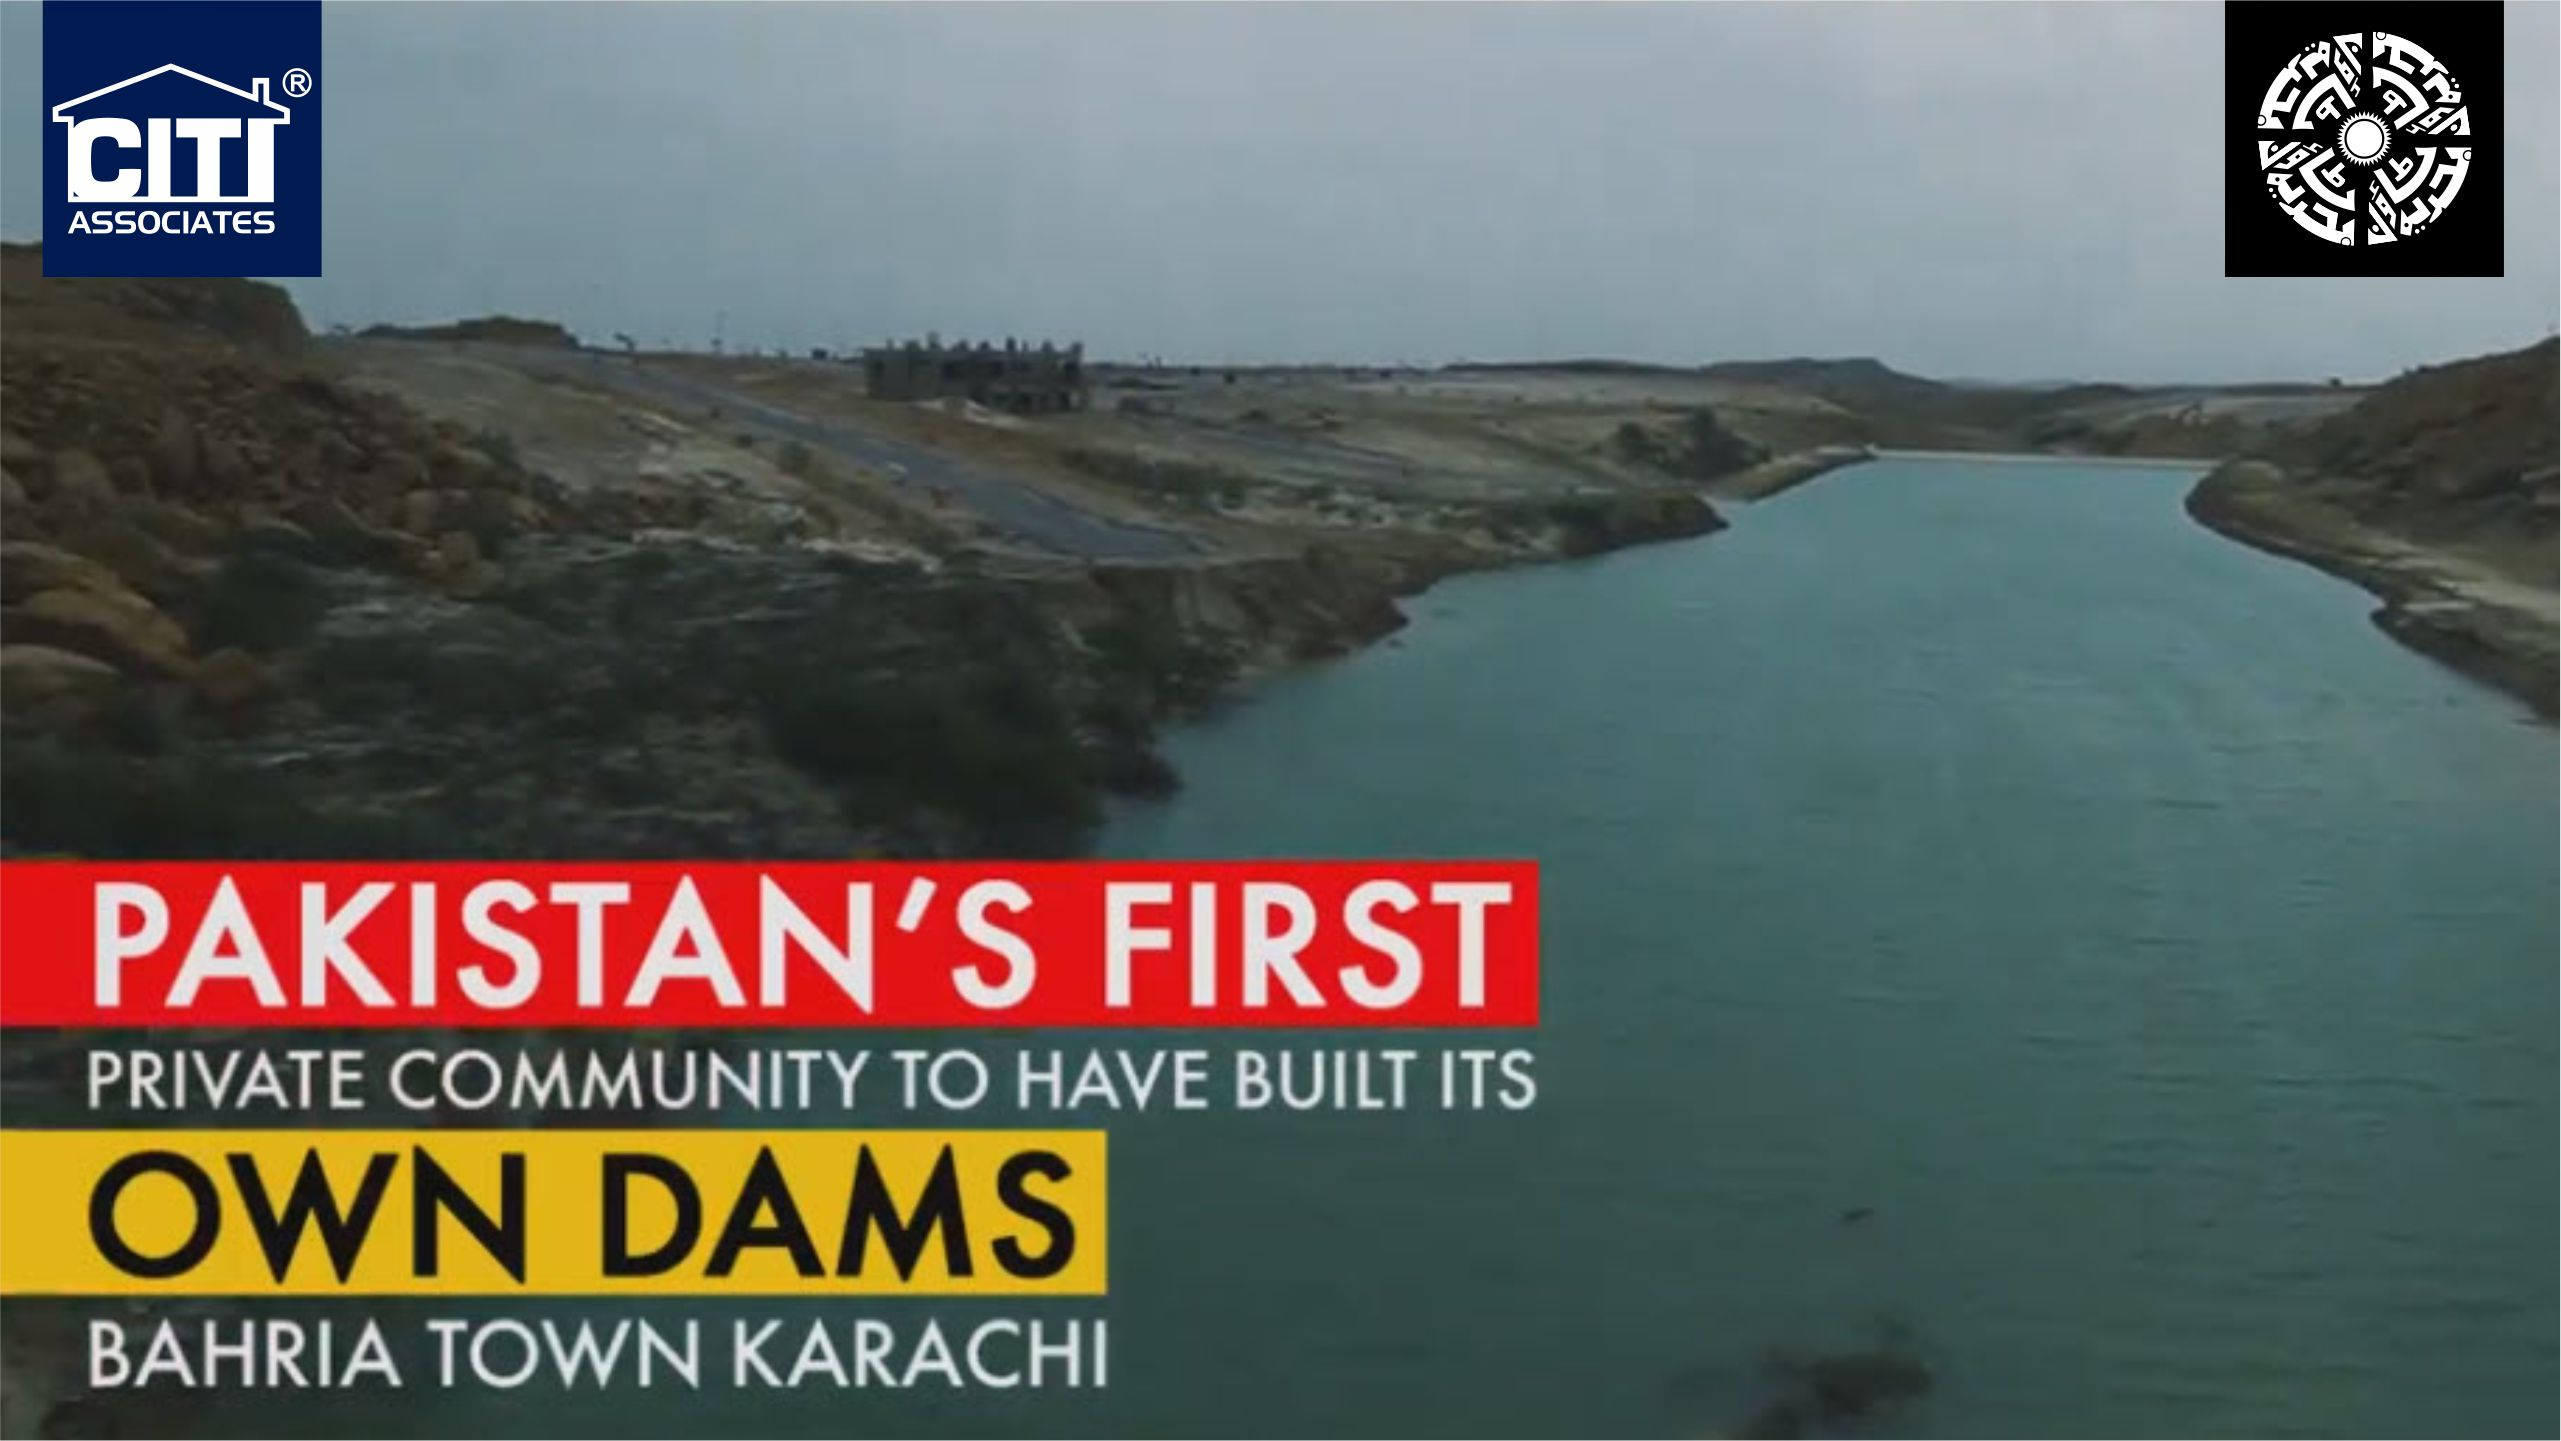 Pakistan's First Private Community to have Built its Own Dams | Bahria Town Karachi